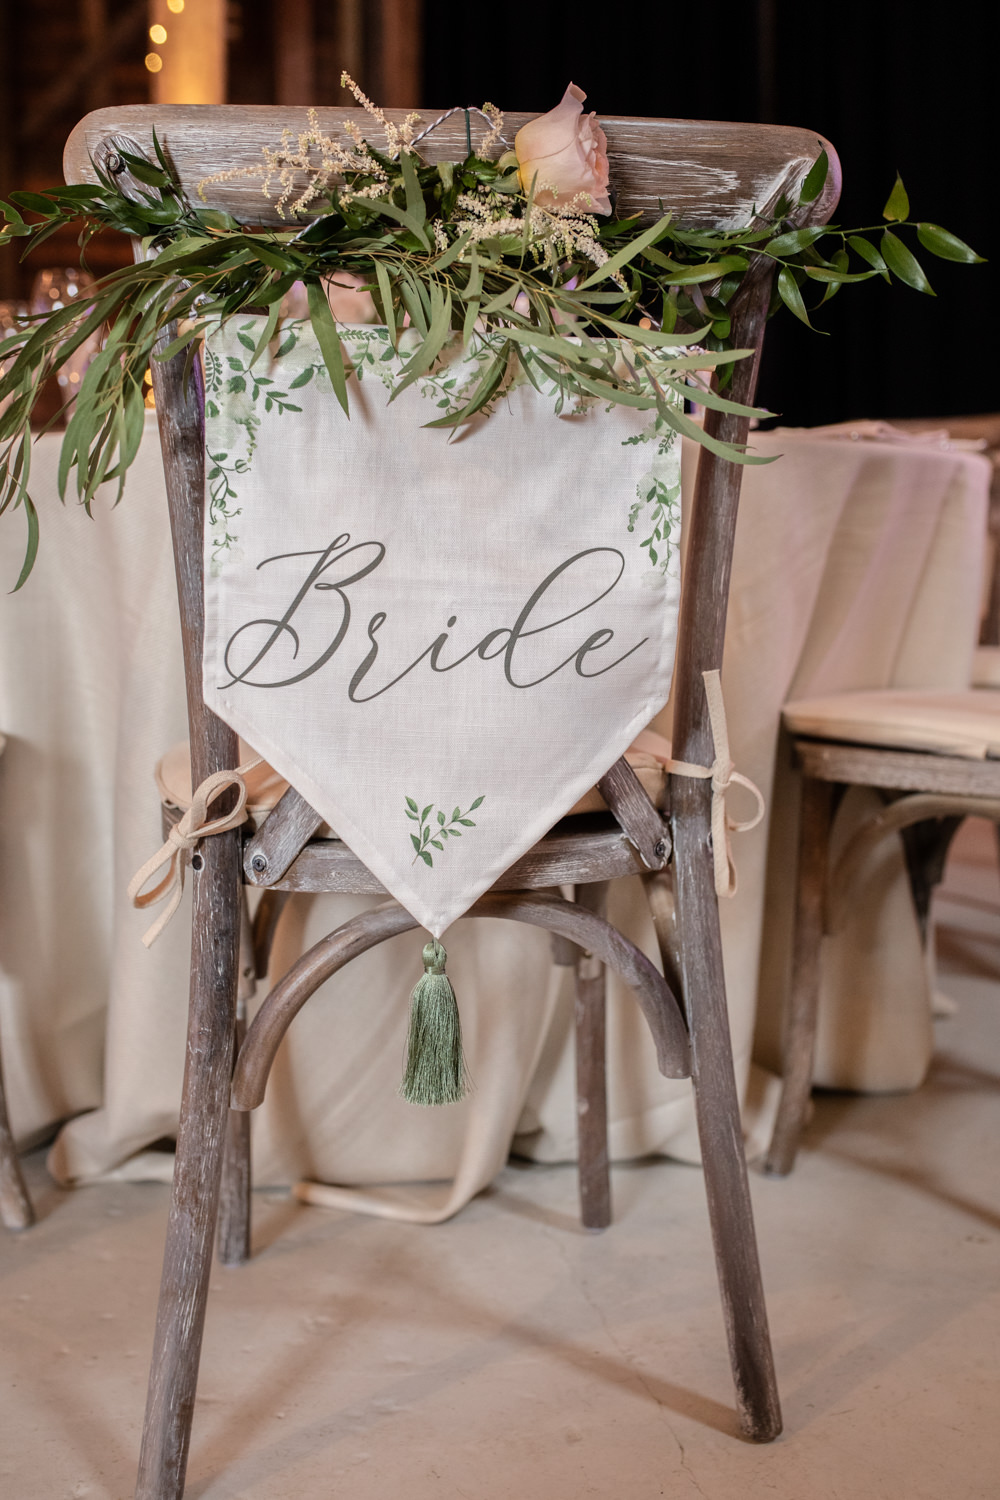 Bride Chair Sign Foliage Banner Cross Back Chairs Watercolour Wedding Kerry Ann Duffy Photography